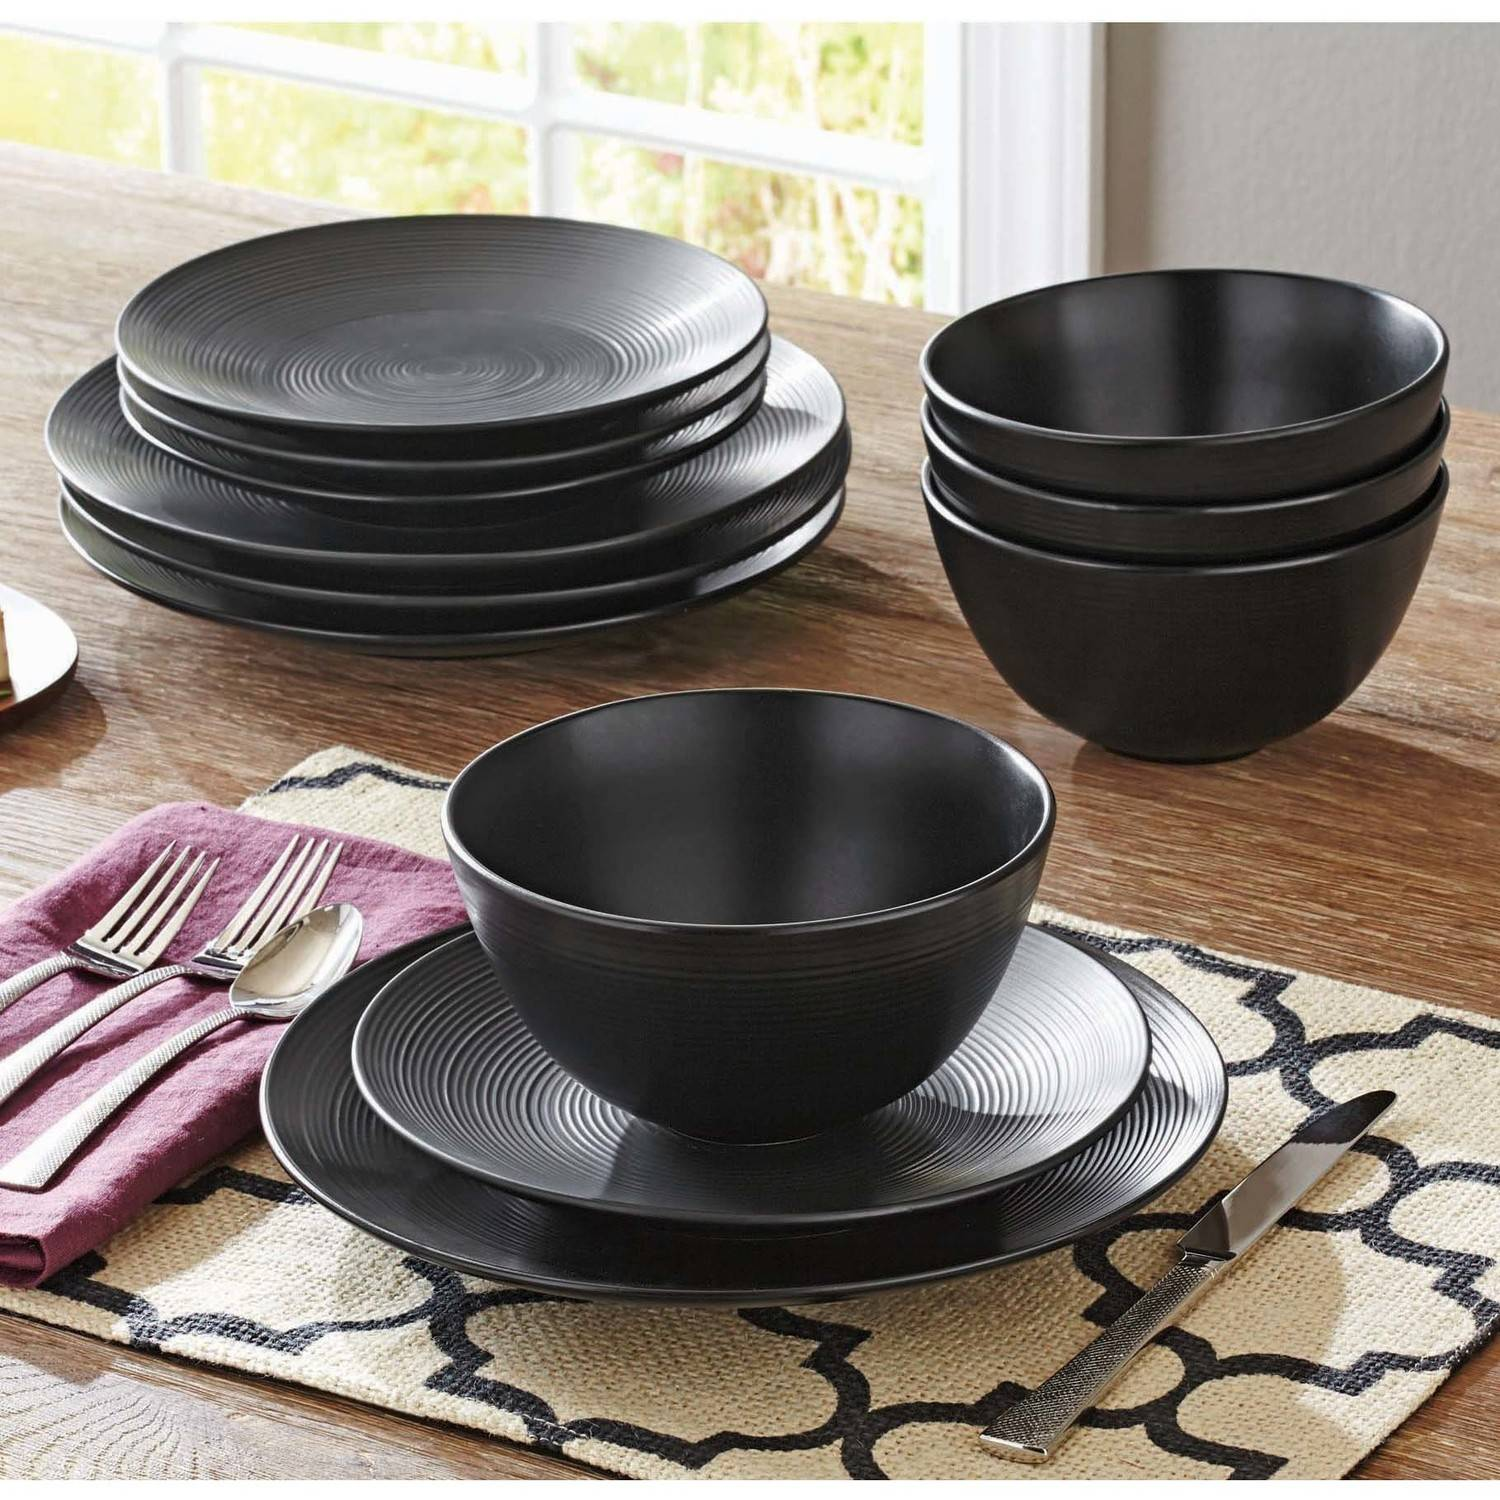 Better Homes And Gardens Matte Swirl 12 Piece Dinnerware Set, Black    Walmart.com